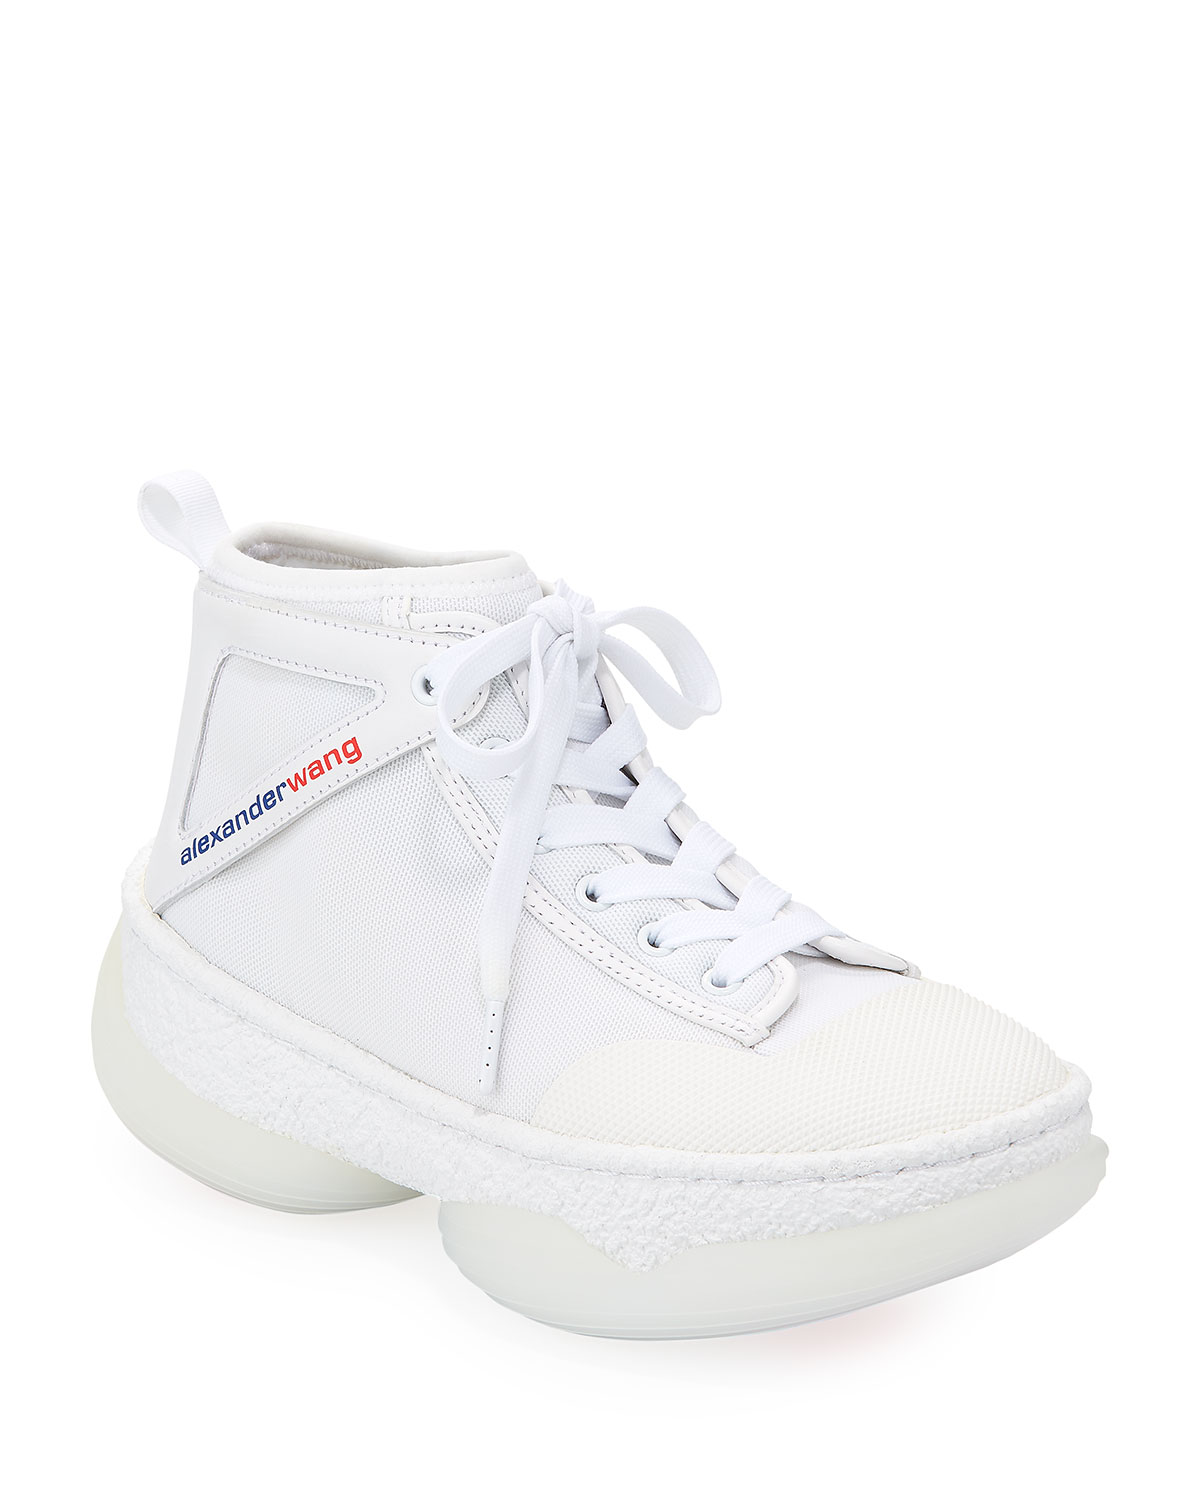 A1 Lace-Up High-Top Sneakers